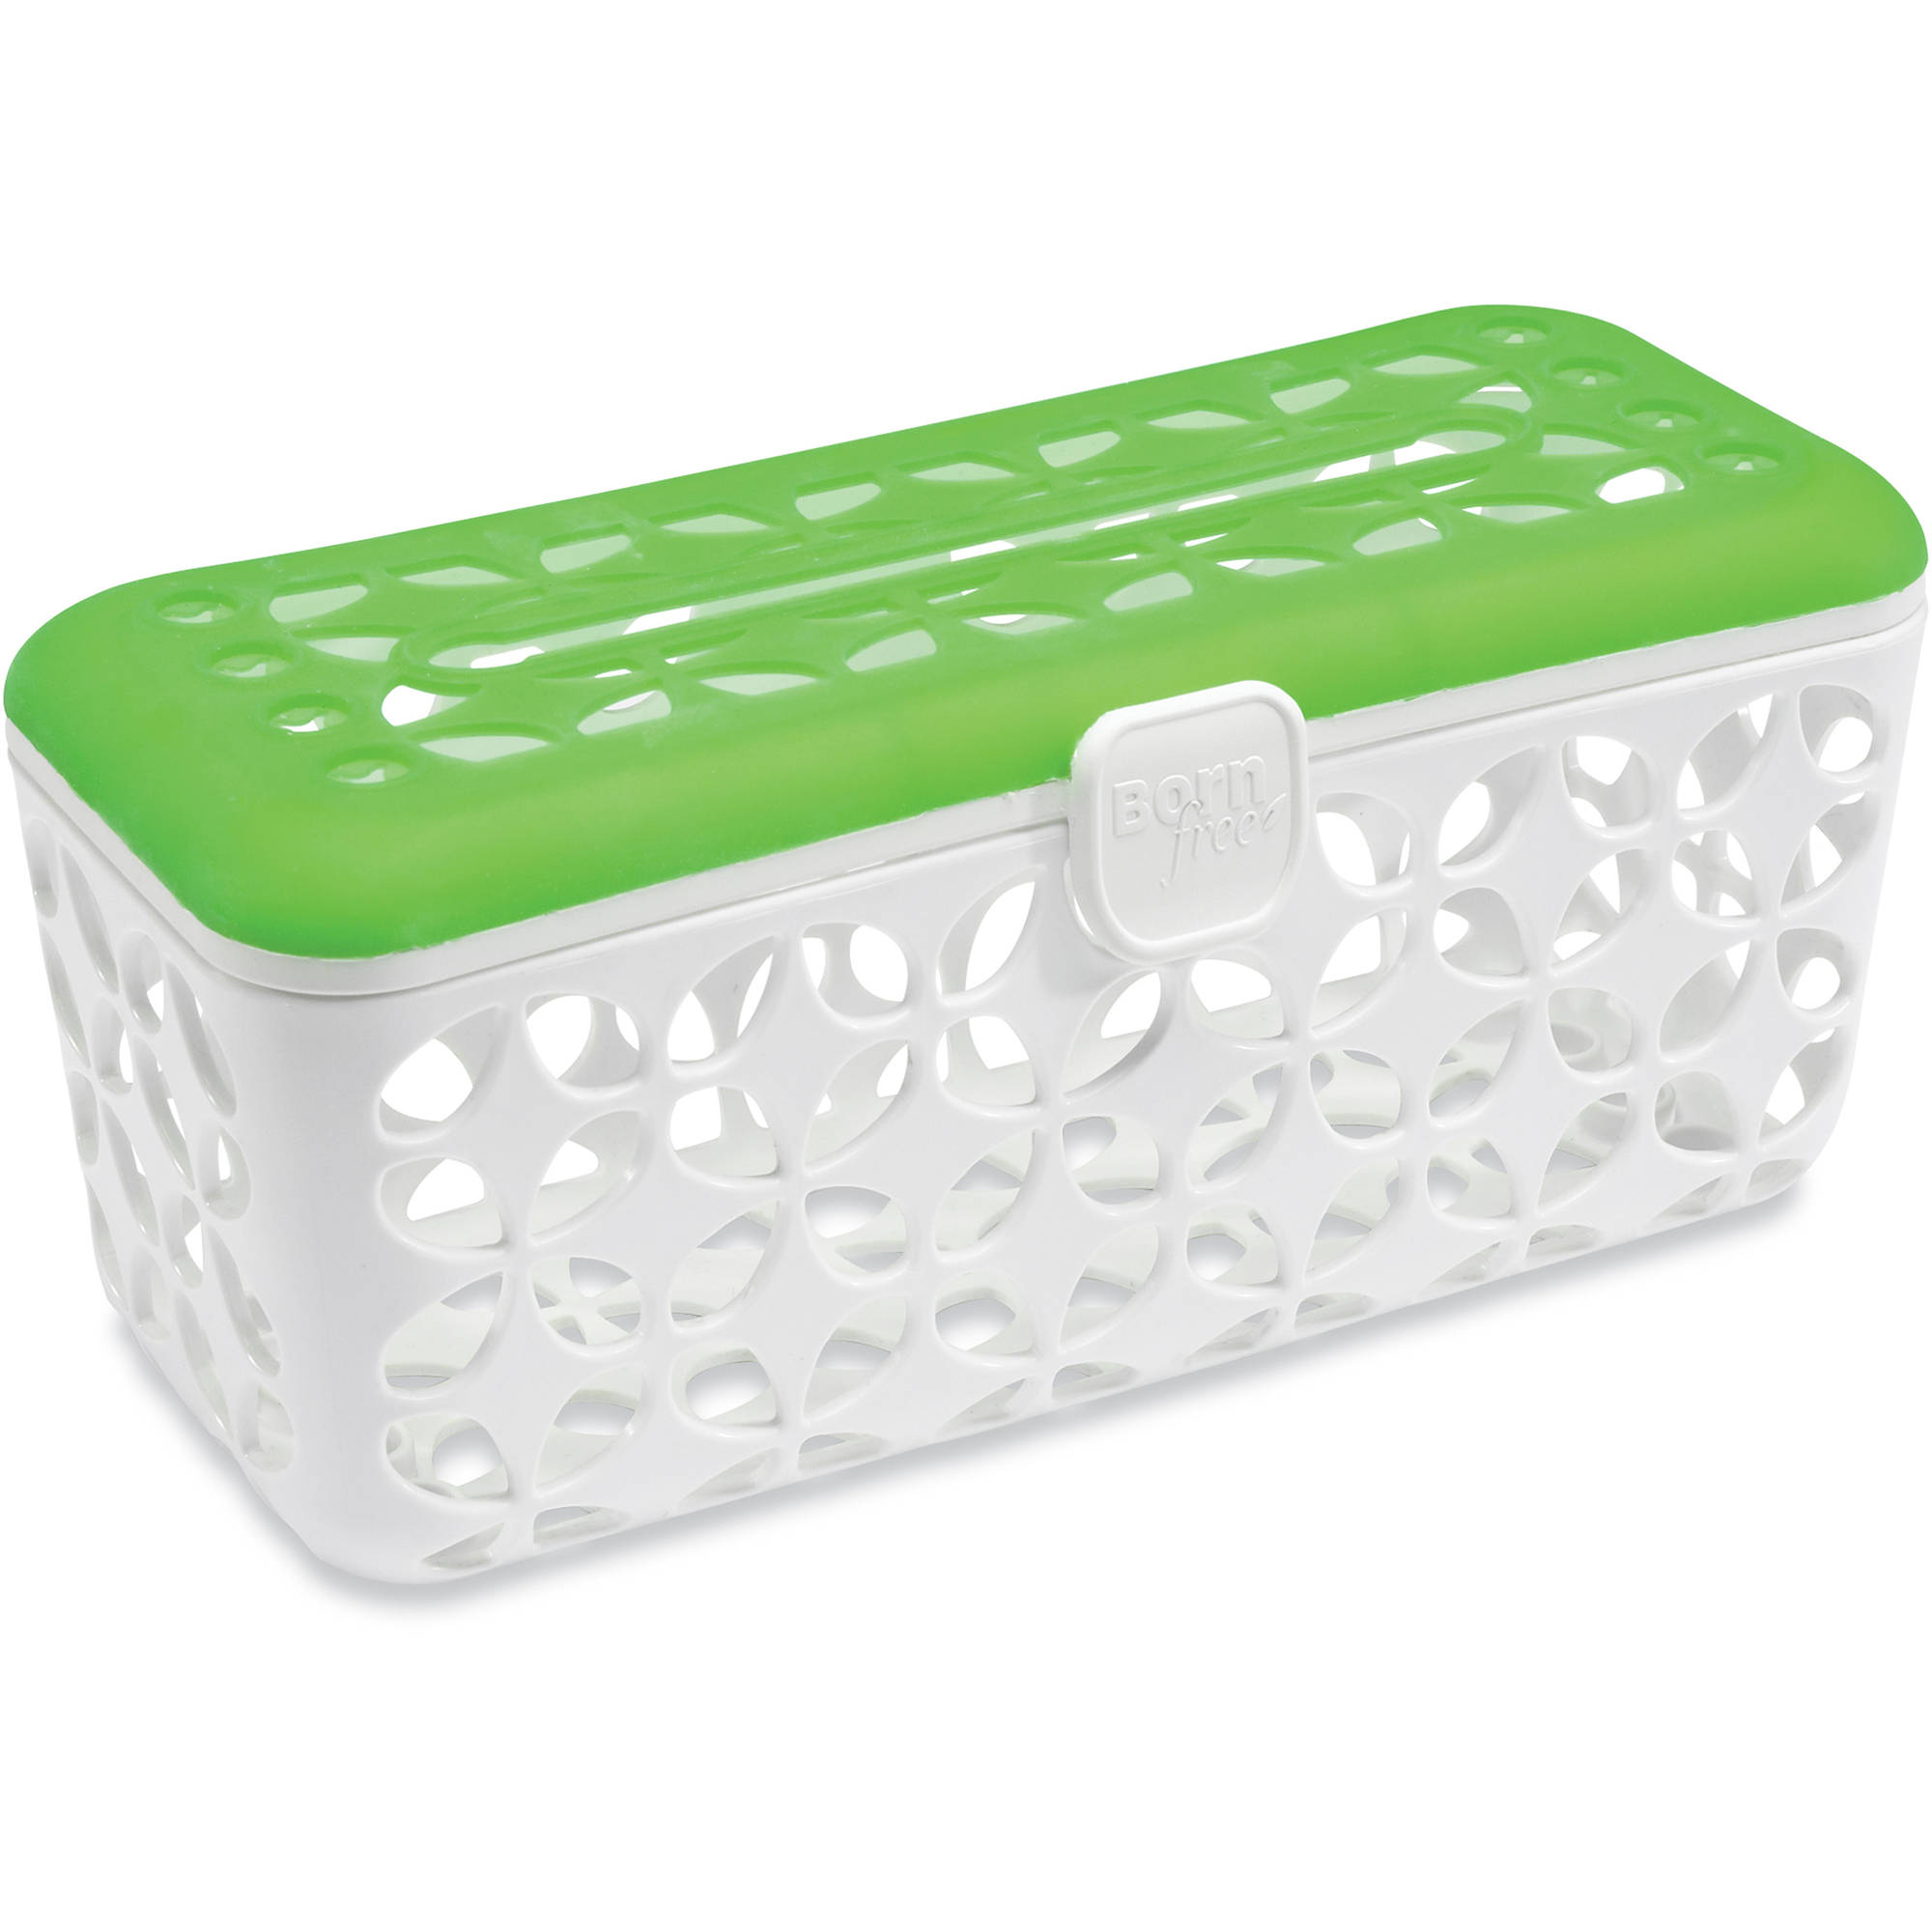 Born Free Quick Load Dishwasher Basket